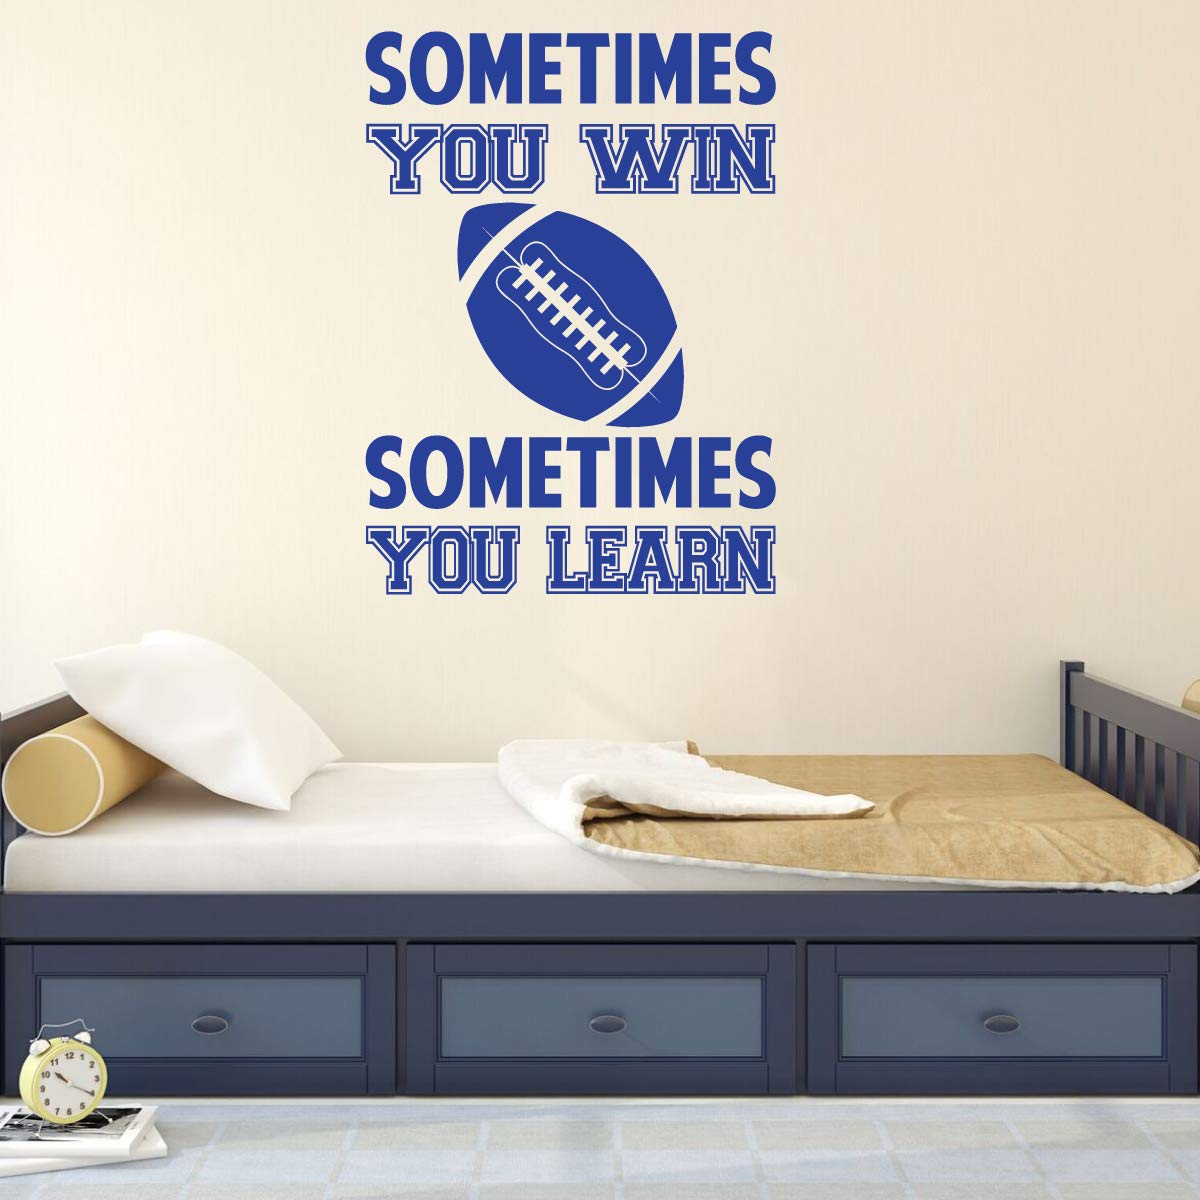 Football Wall Decal Motivational Vinyl Decor Wall Decal